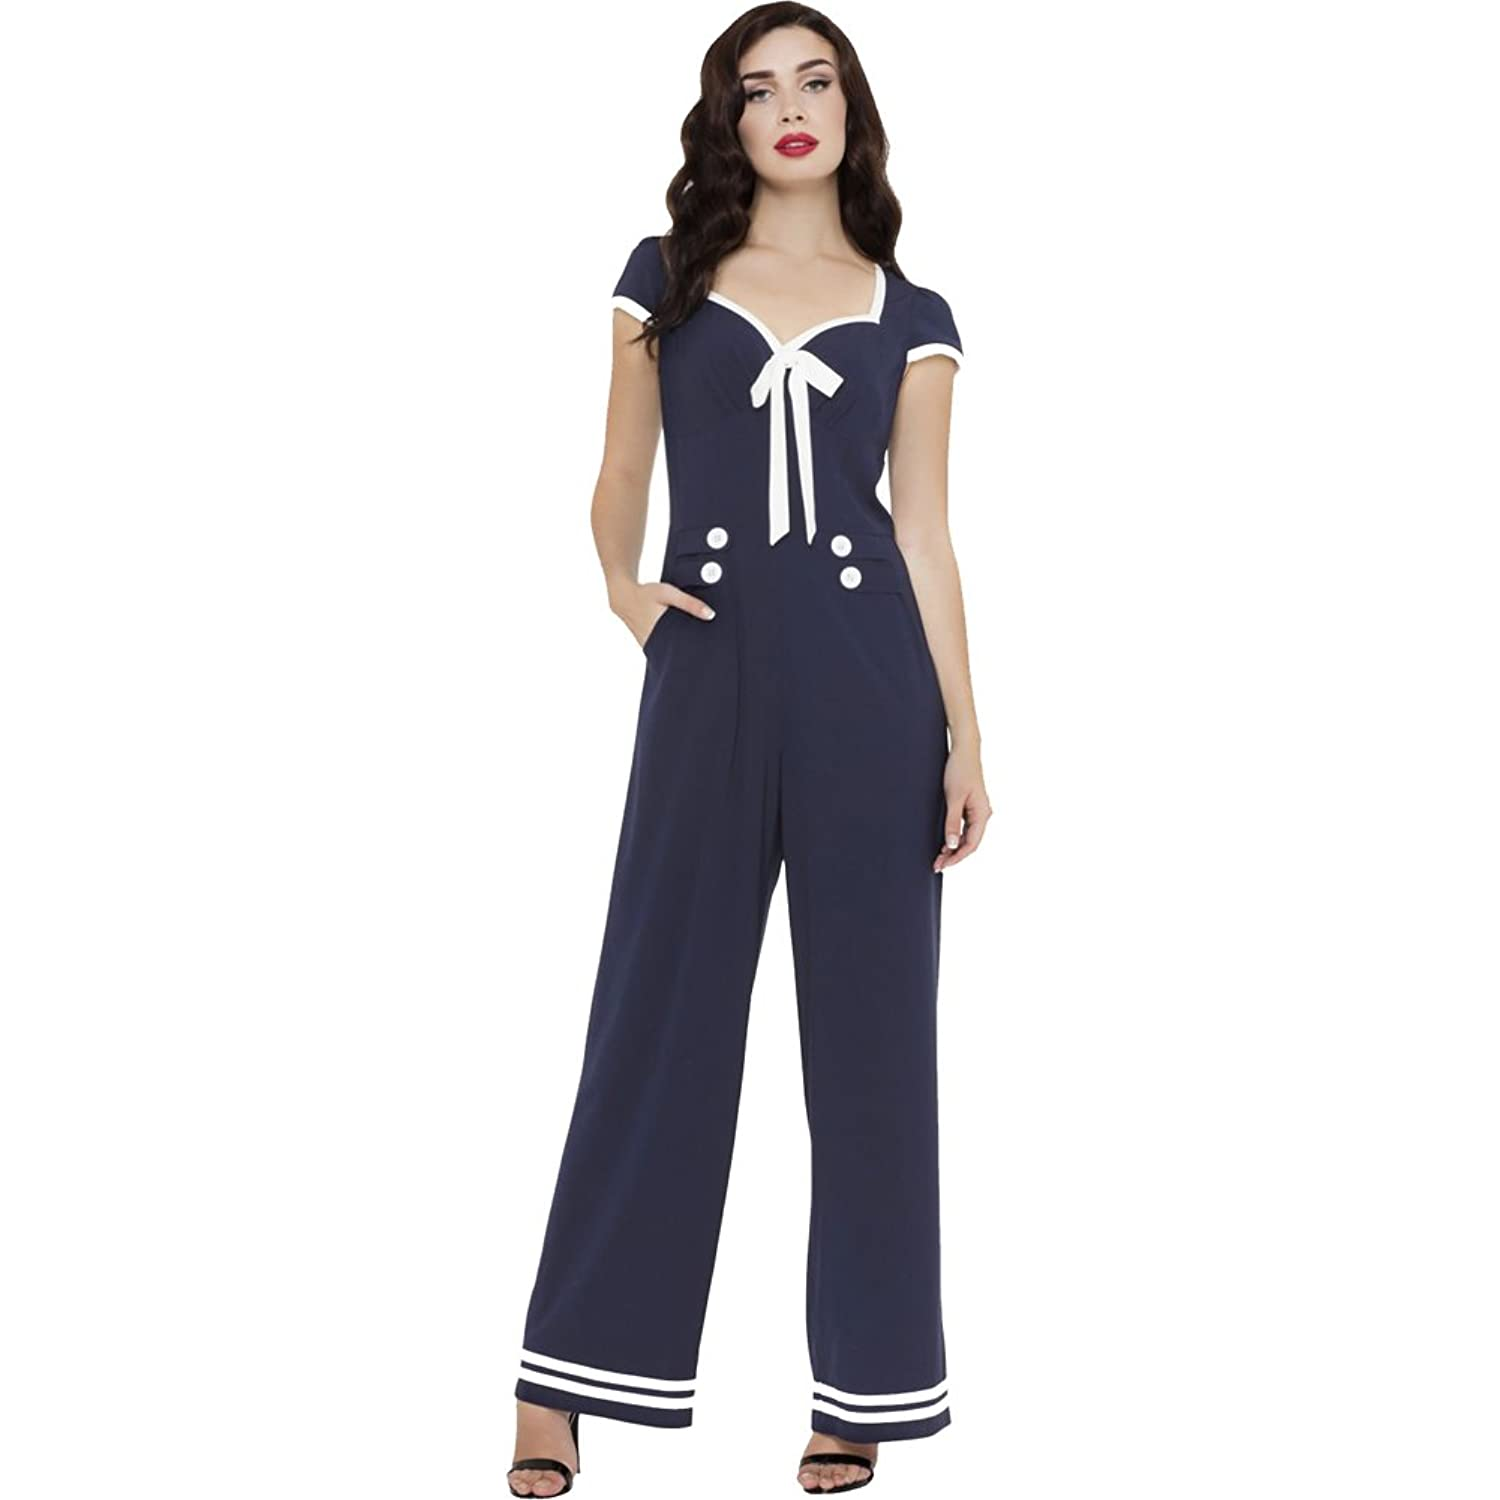 Vintage High Waisted Trousers, Sailor Pants, Jeans Womens Voodoo Vixen JOLENE Nautical Stripped Wide Leg Jumpsuit Navy $73.95 AT vintagedancer.com